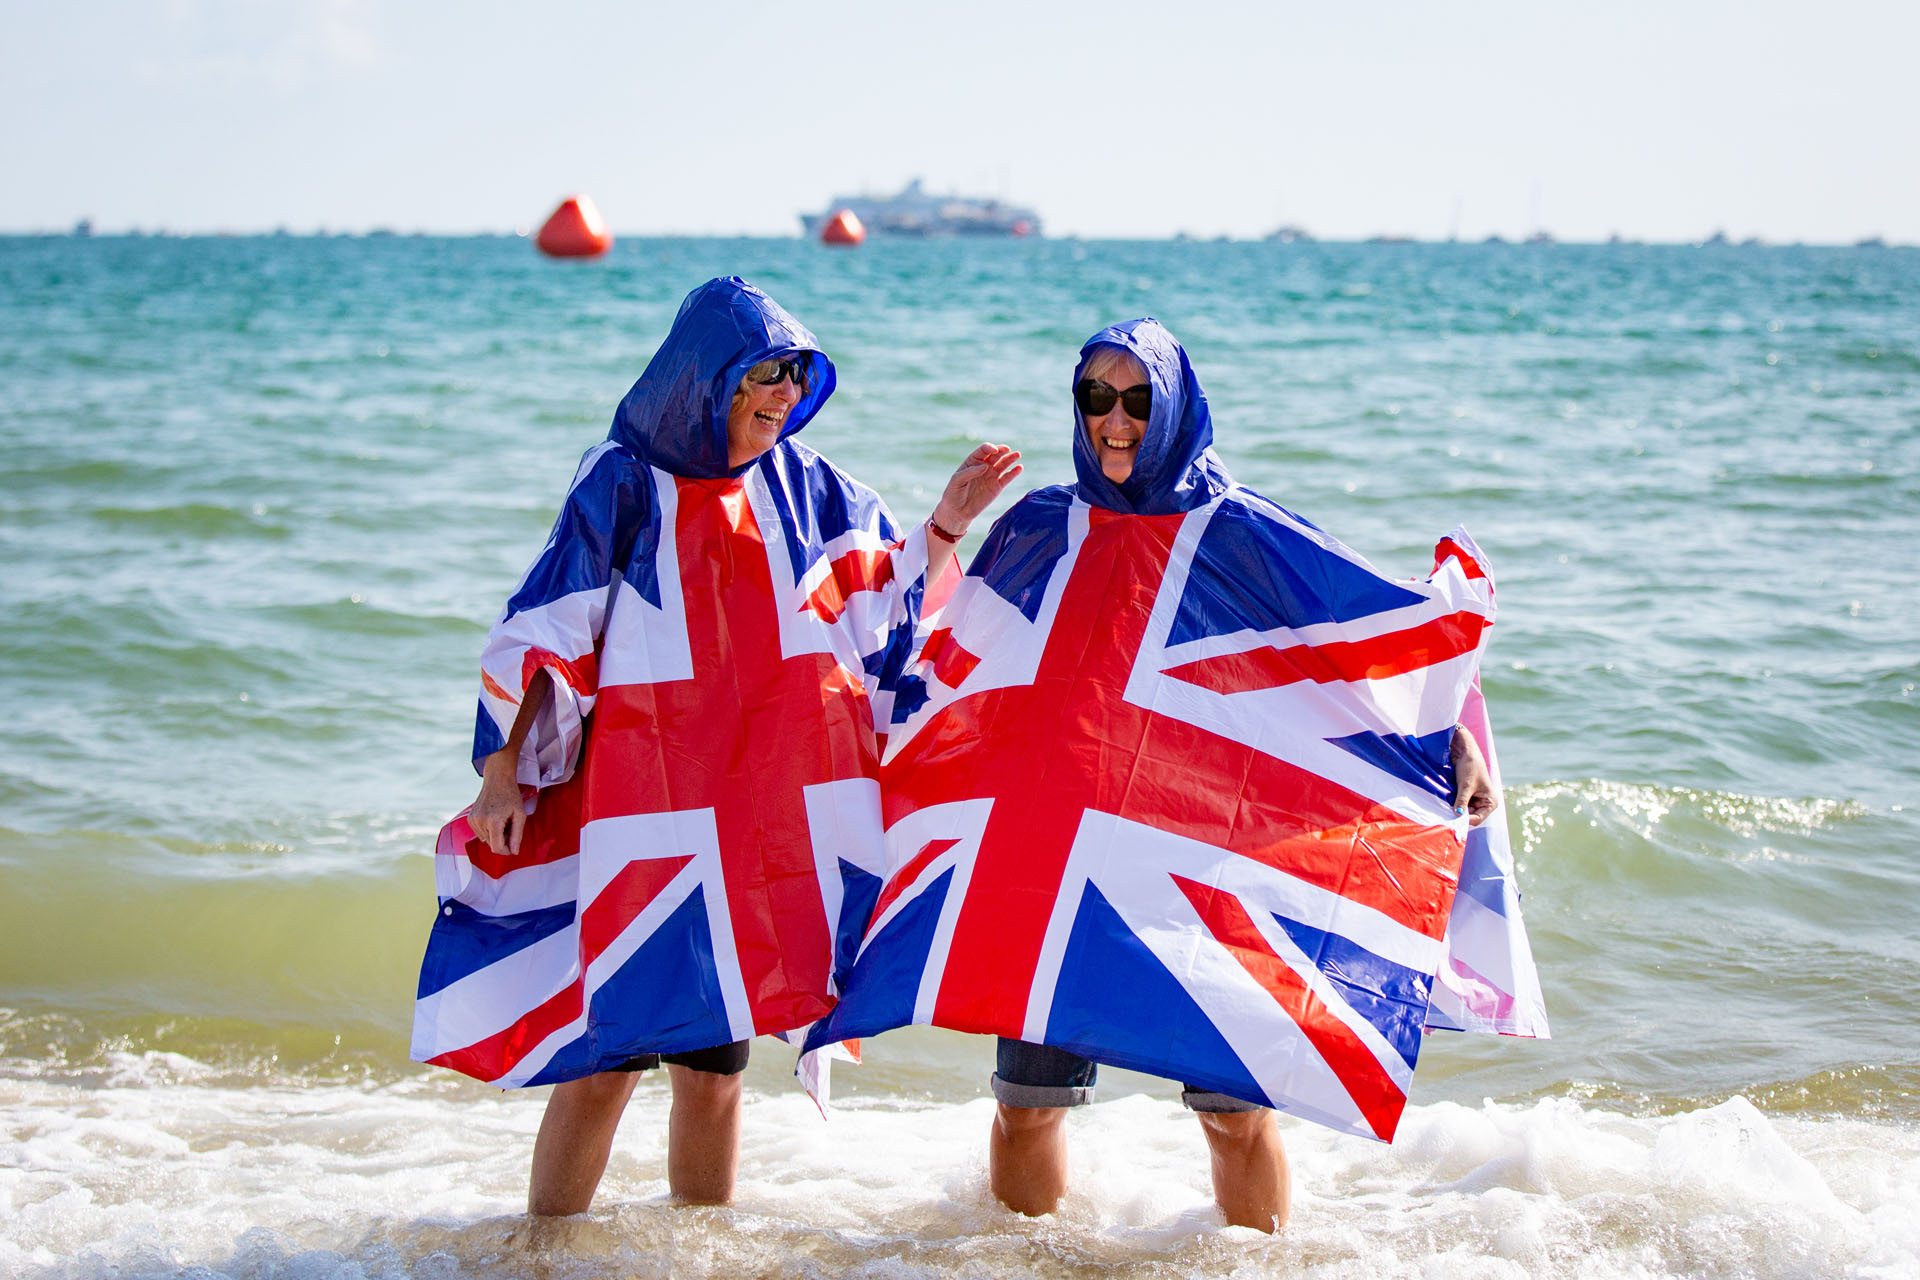 Two woman standing in the seat showing off their Union jack ponchos